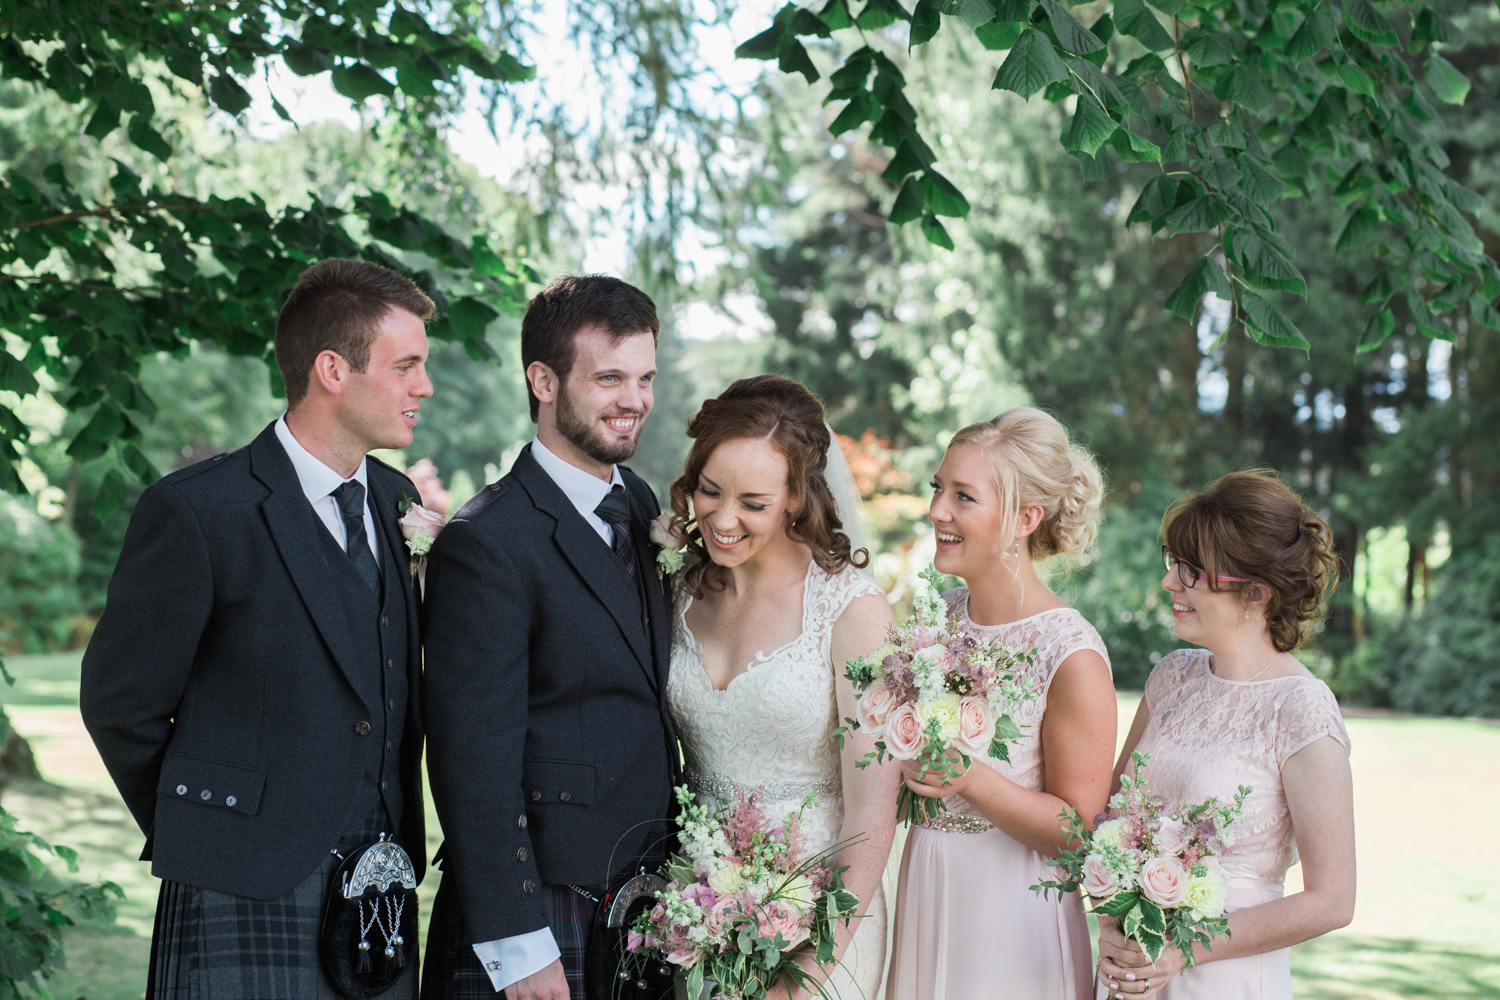 wedding party, bridal party, Scottish wedding photographer, wedding photographers aberdeen, aberdeen wedding photographers, aberdeen wedding photography, Aberdeenshire wedding photographers